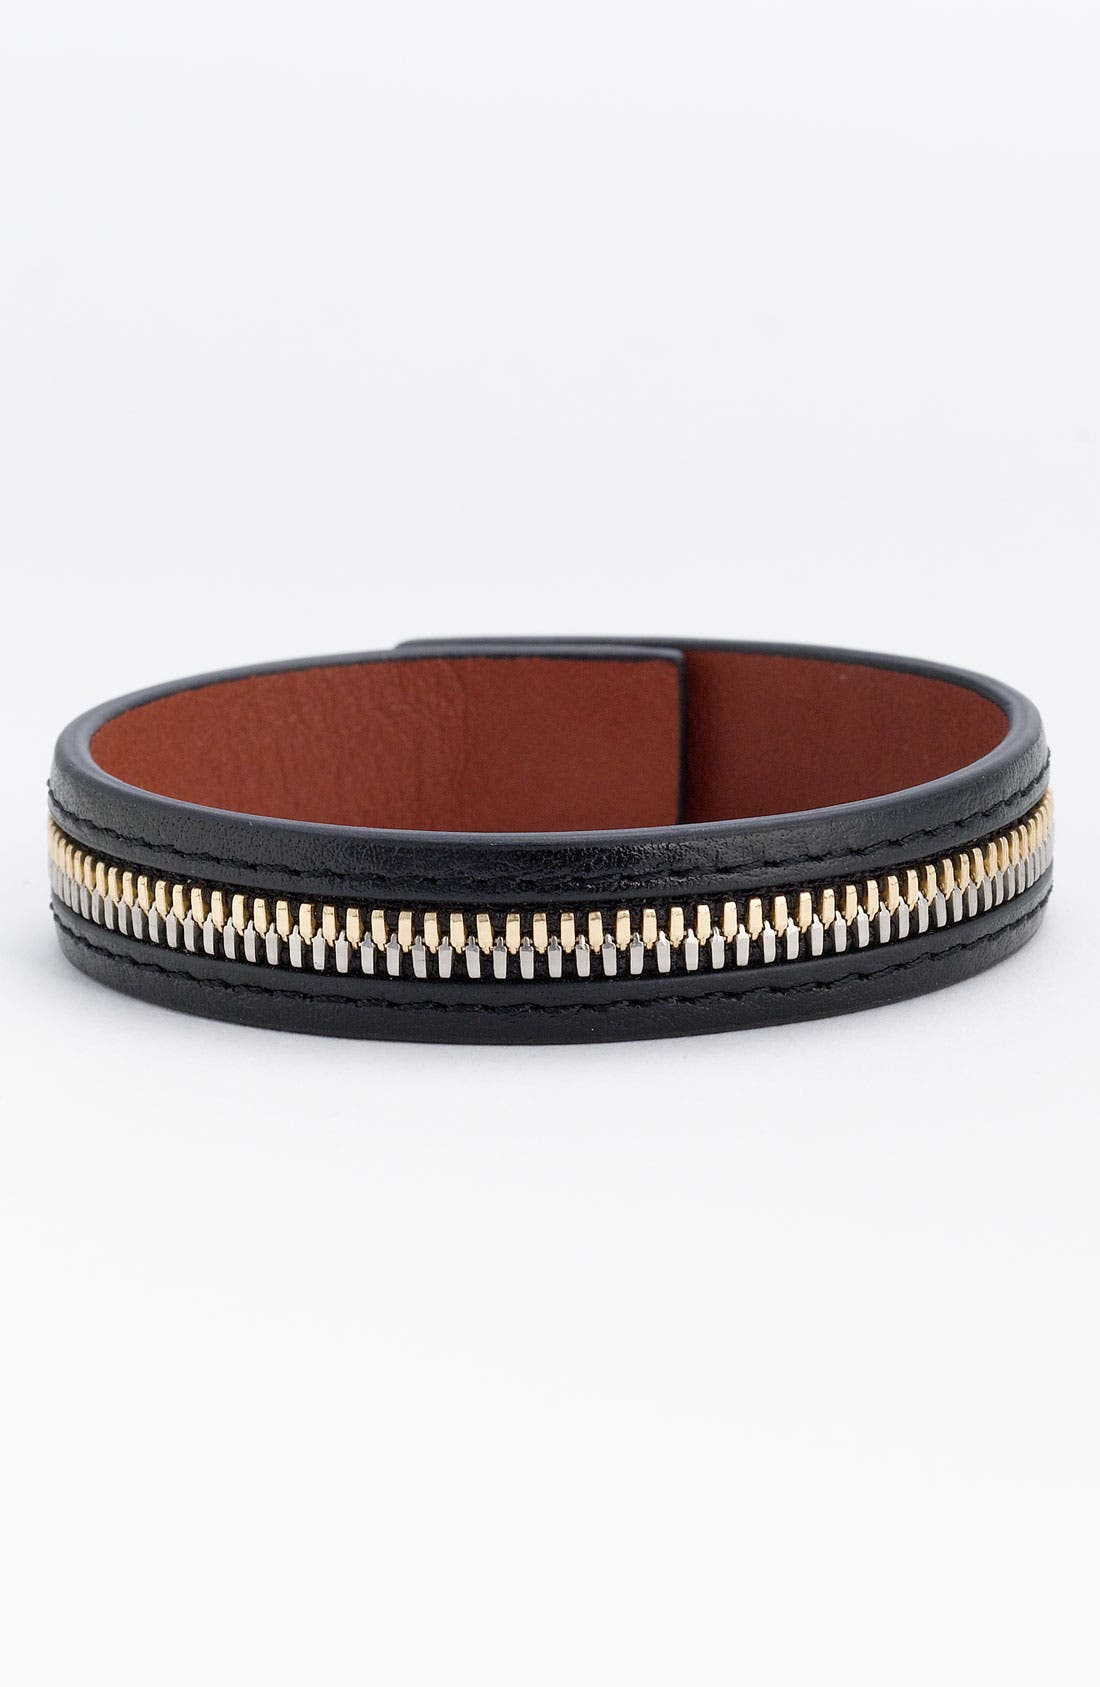 Main Image - WANT Les Essentiels de la Vie 'Tambo' Zip Leather Bracelet